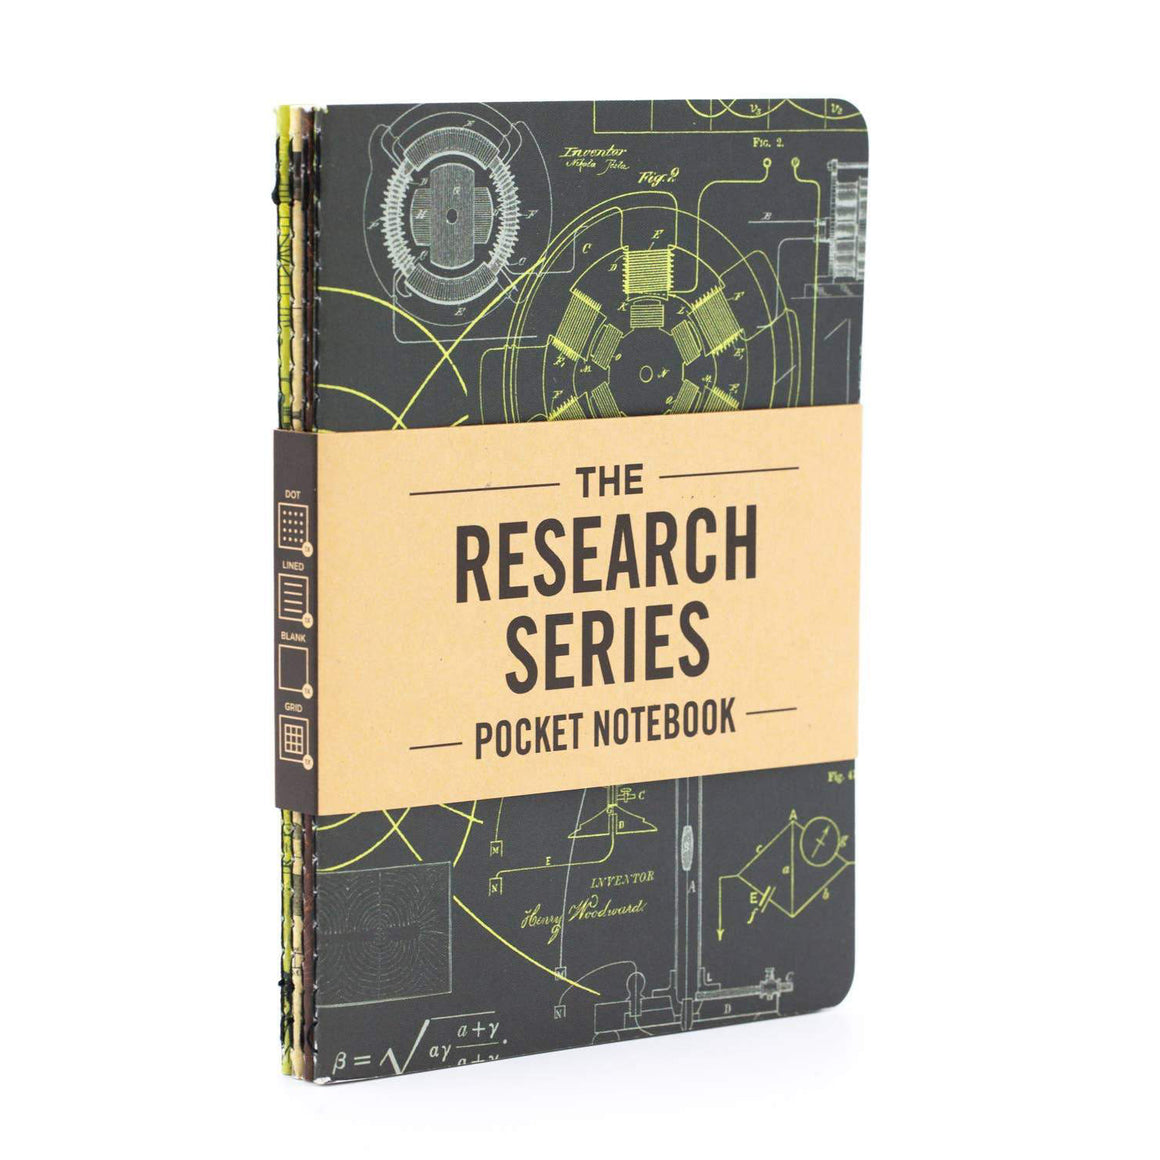 Cognitive Surplus: Engineering & Physics Pocket Notebooks 4-pack